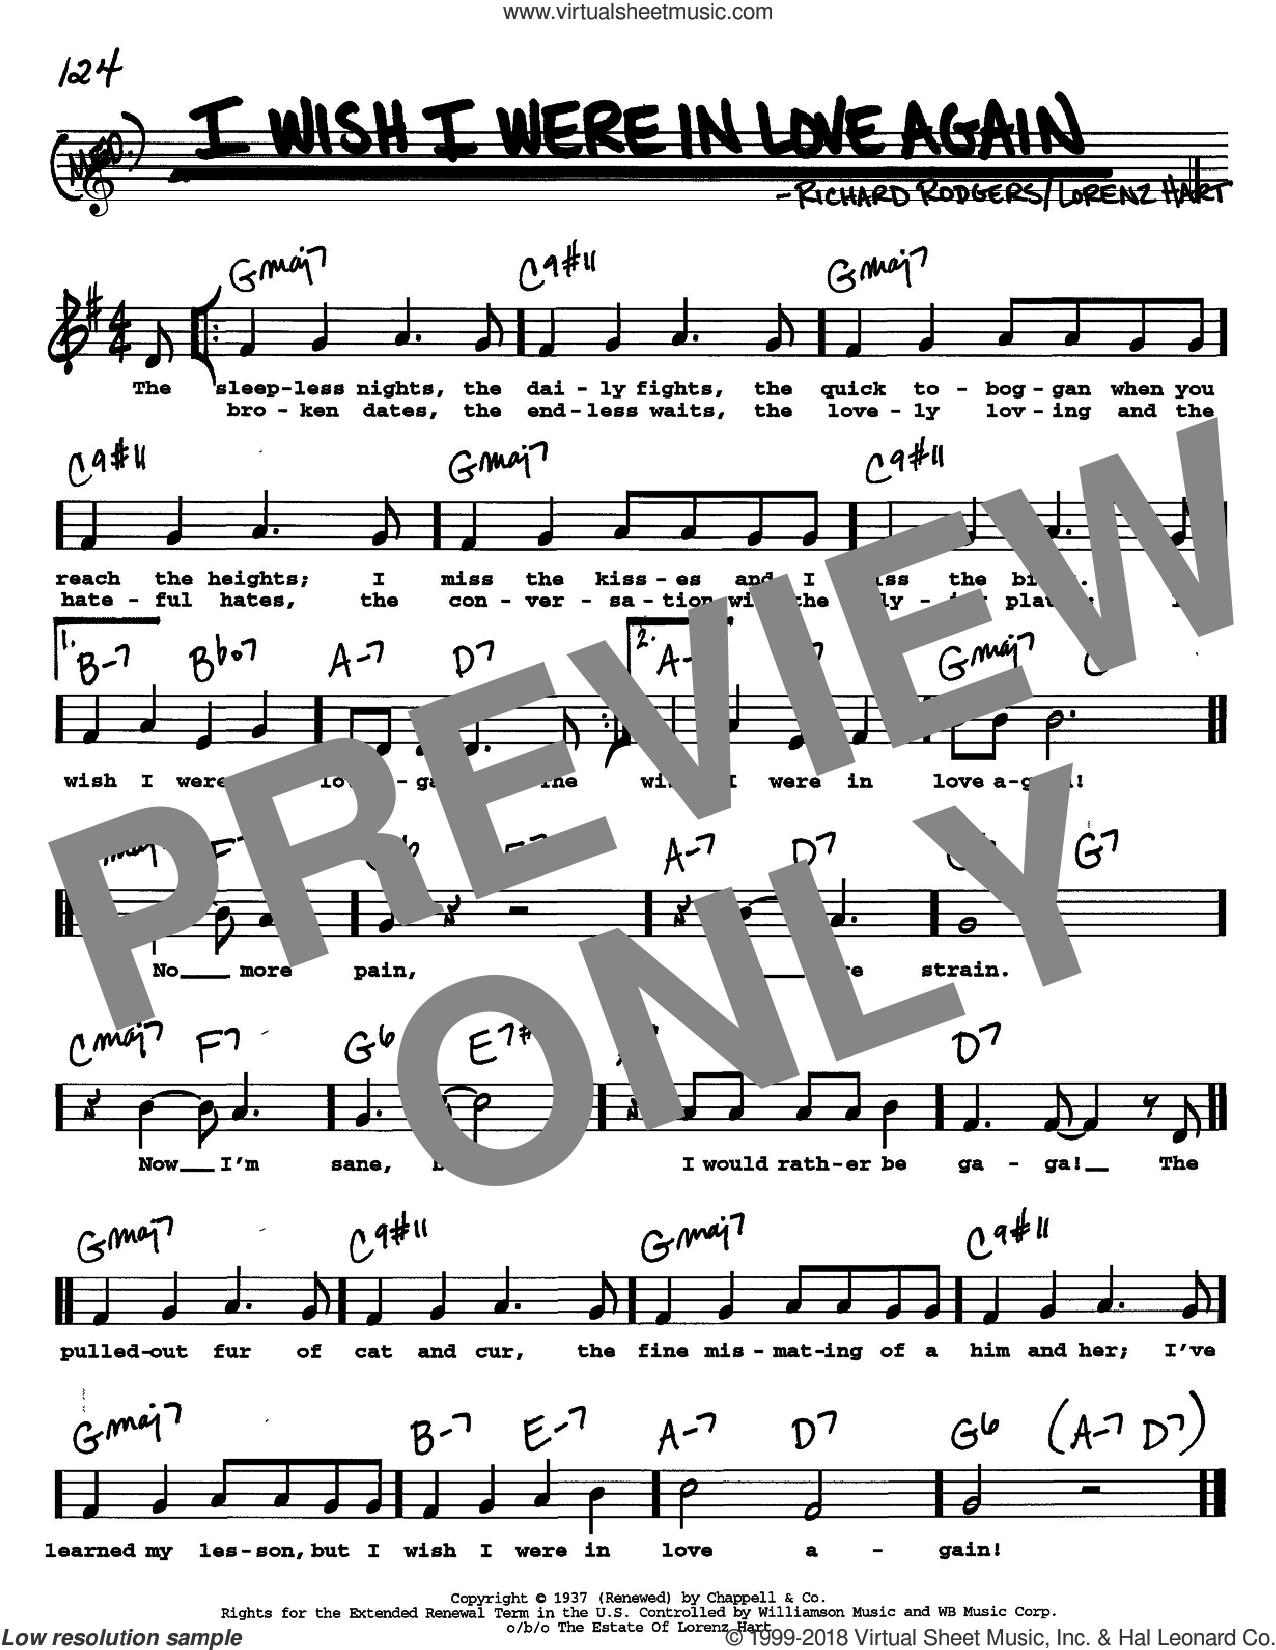 I Wish I Were In Love Again sheet music for voice and other instruments (Vocal Volume 2) by Richard Rodgers